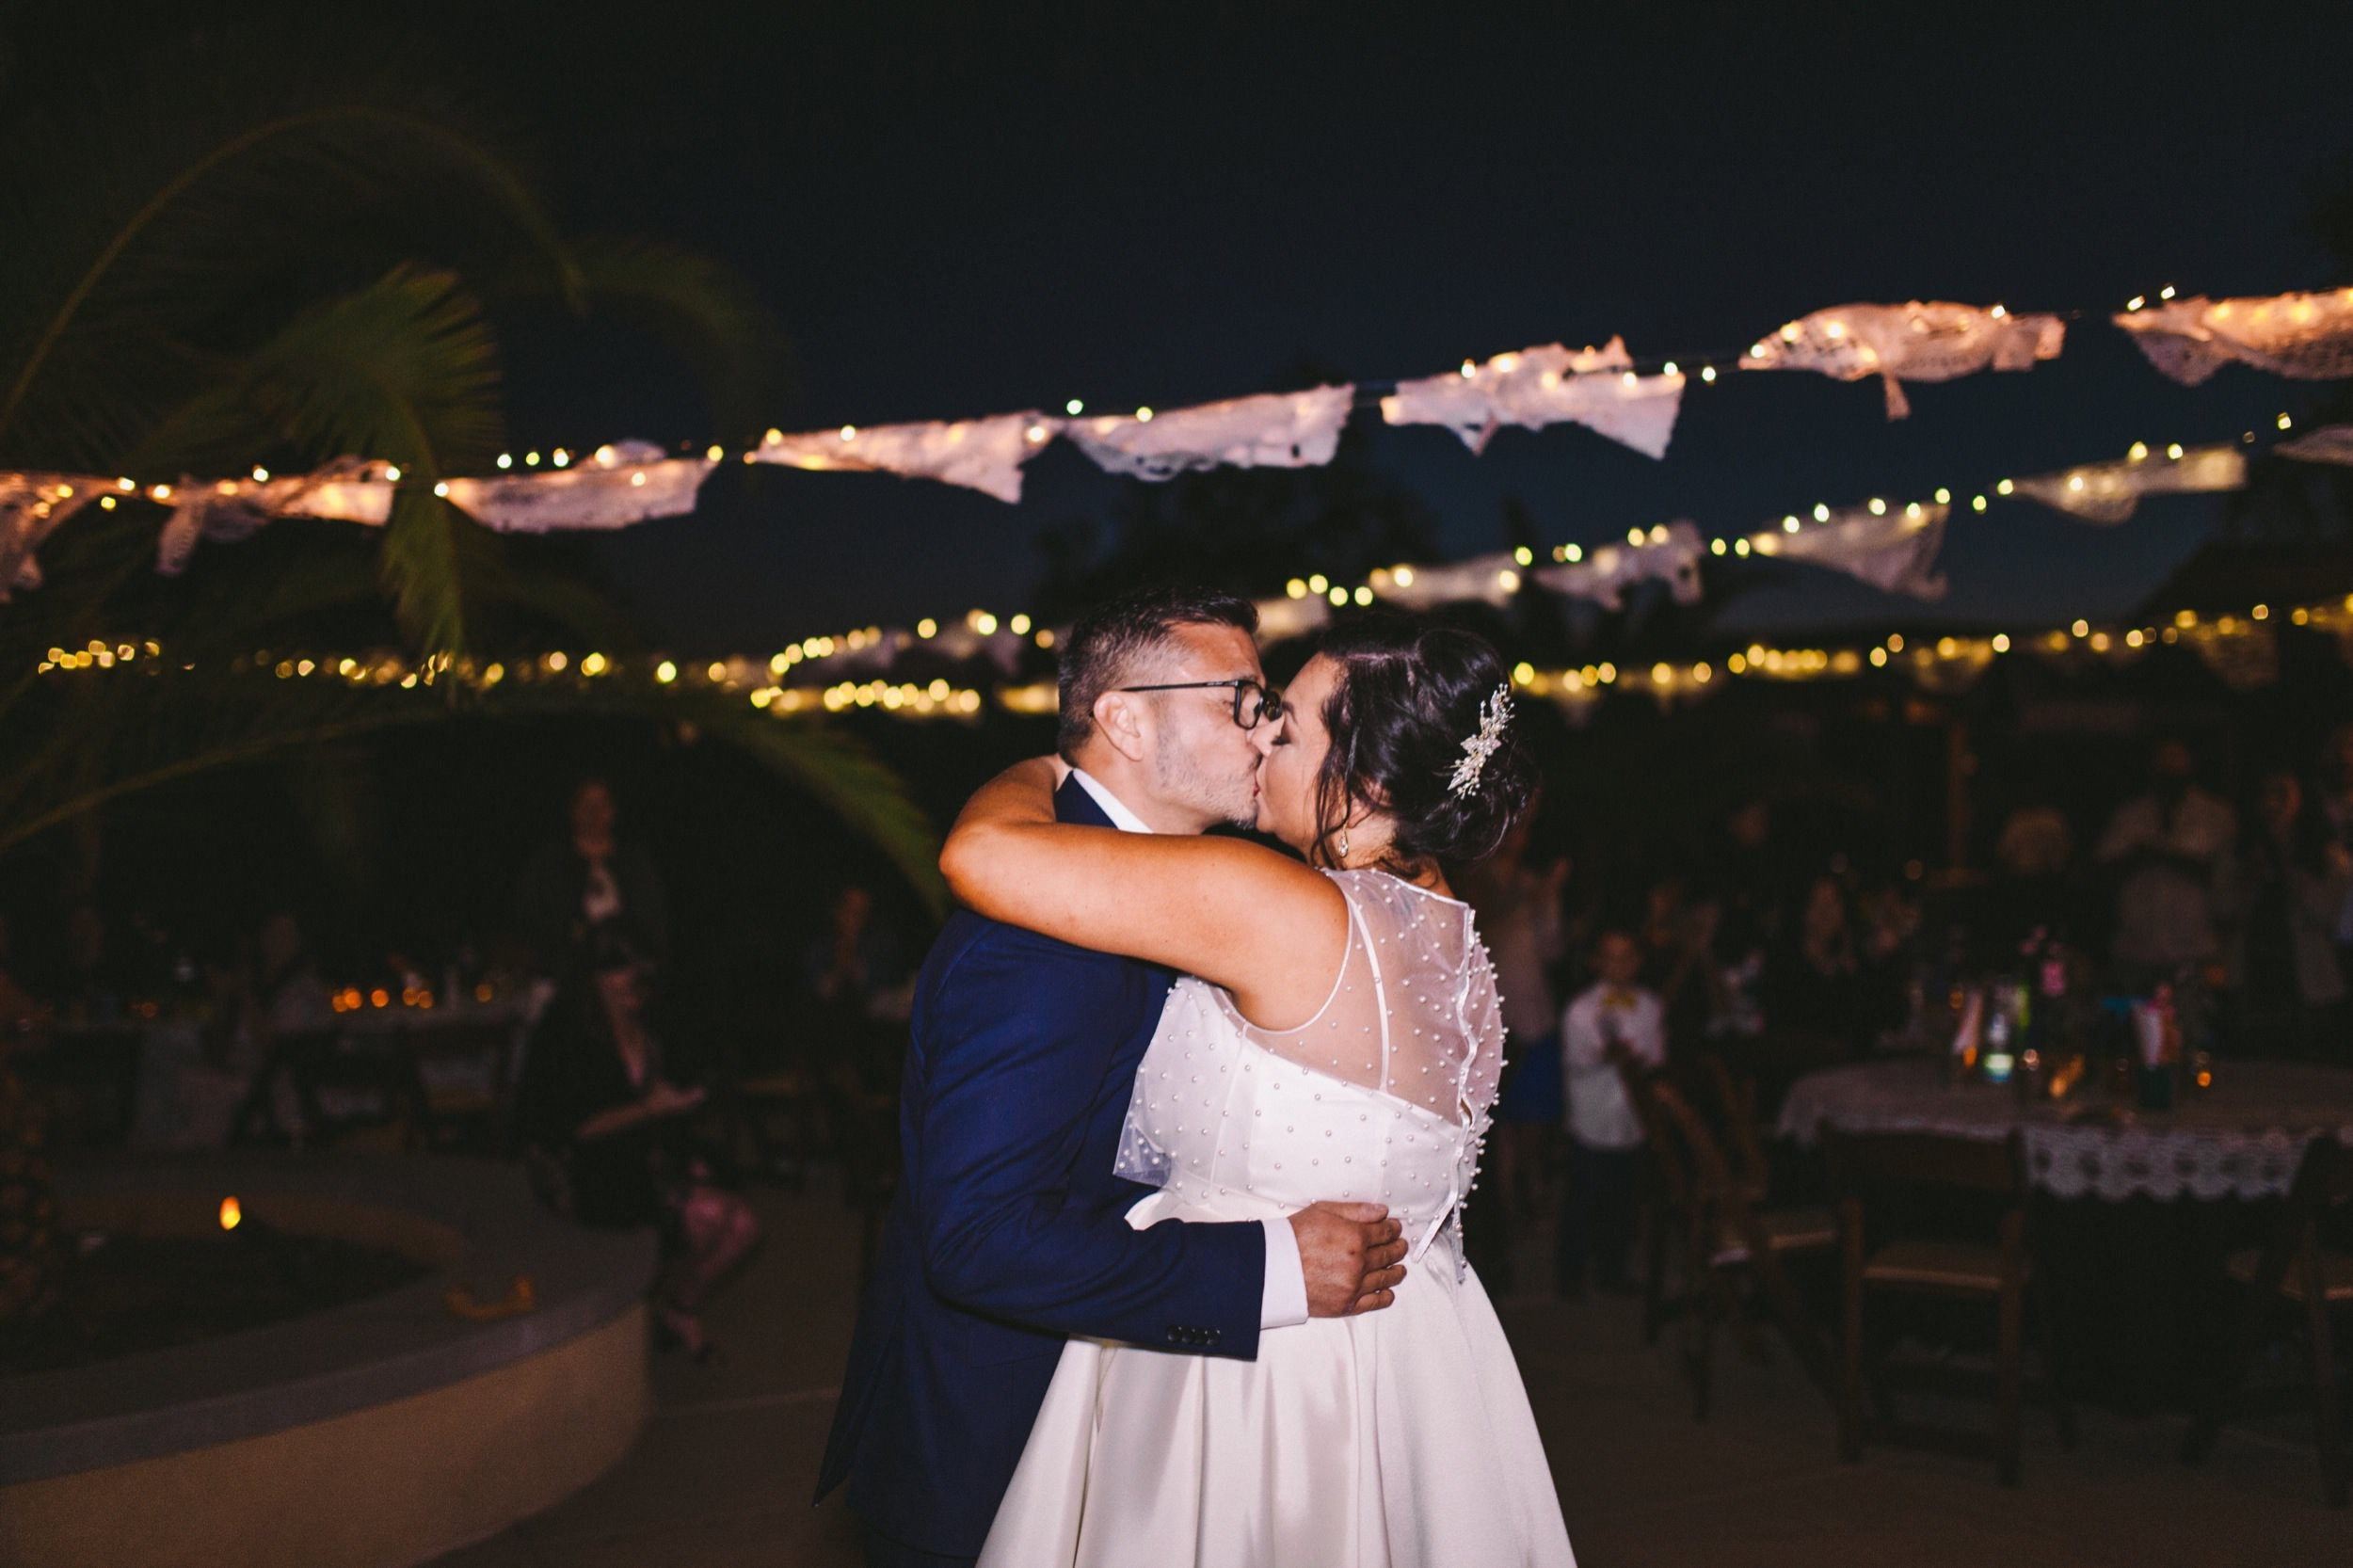 Intimate & colorful Temecula Documentary Wedding Photography-107.jpg